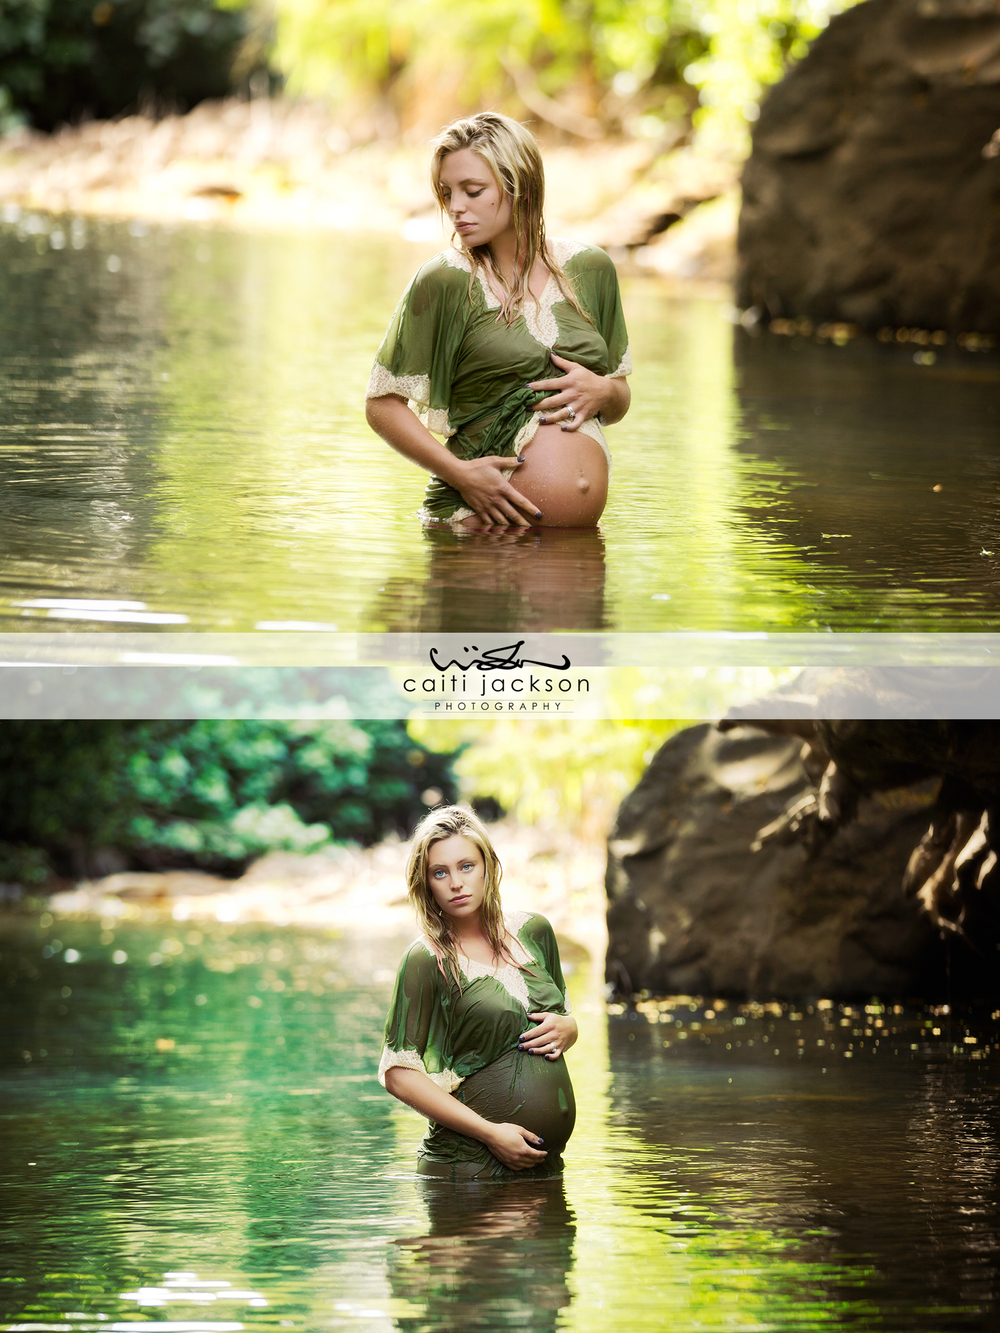 Hawaiian maternity session, Oahu maternity photography, Caiti Jackson Photography, Caiti Jackson, Maternity Photography, Waimea, Oahu